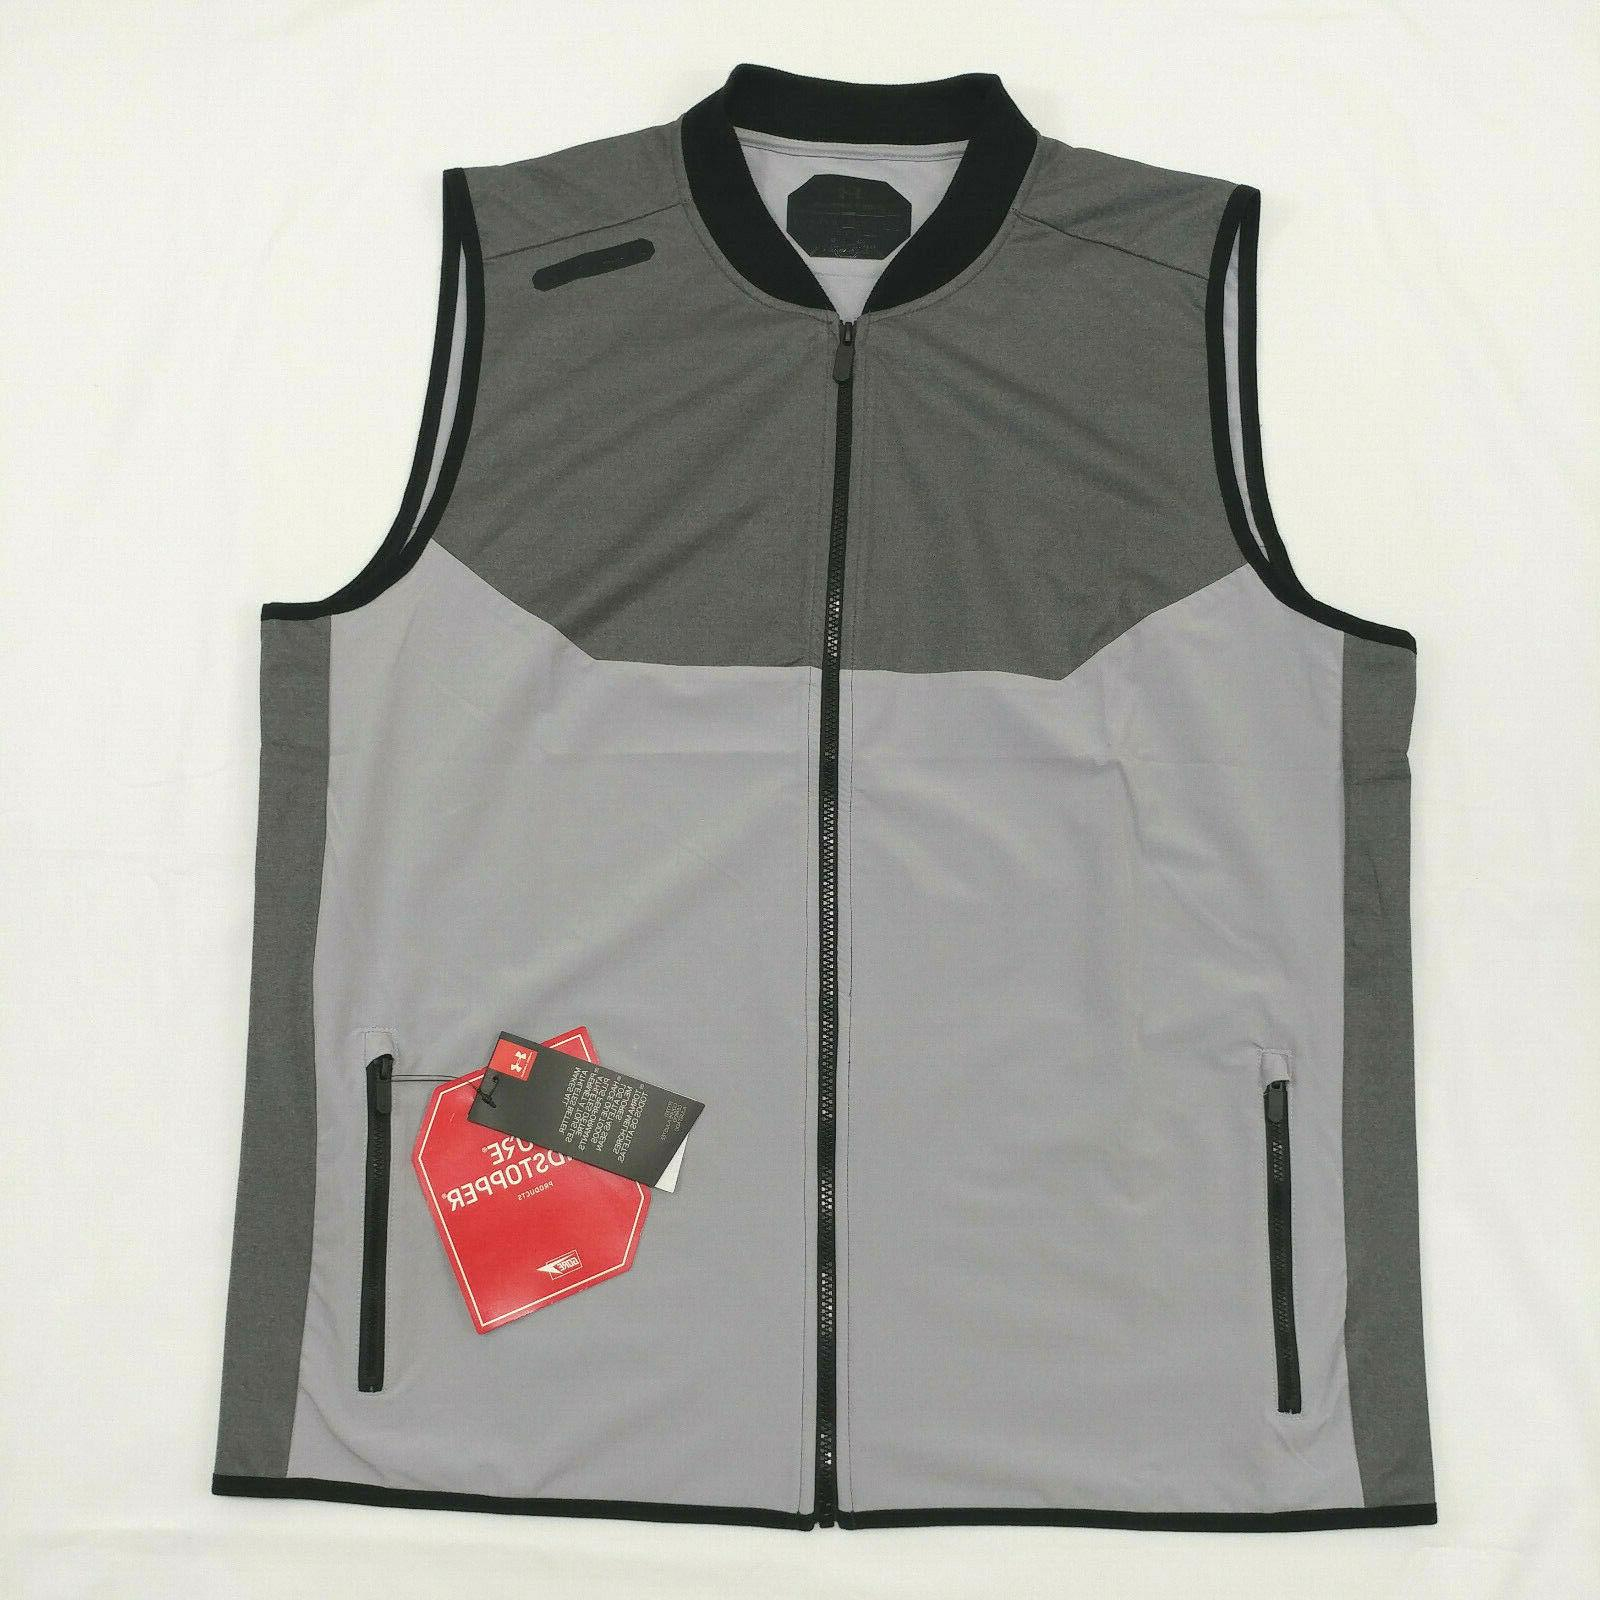 120 men vest full zip size xl